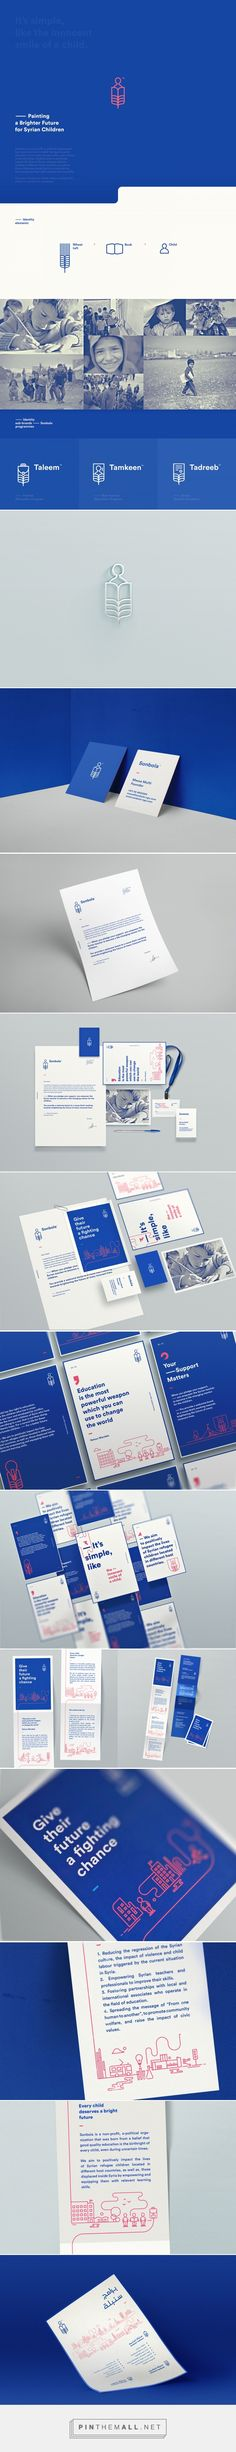 Sonbola™ — (branding/editorial) on Behance... - a grouped images picture - Pin Them All